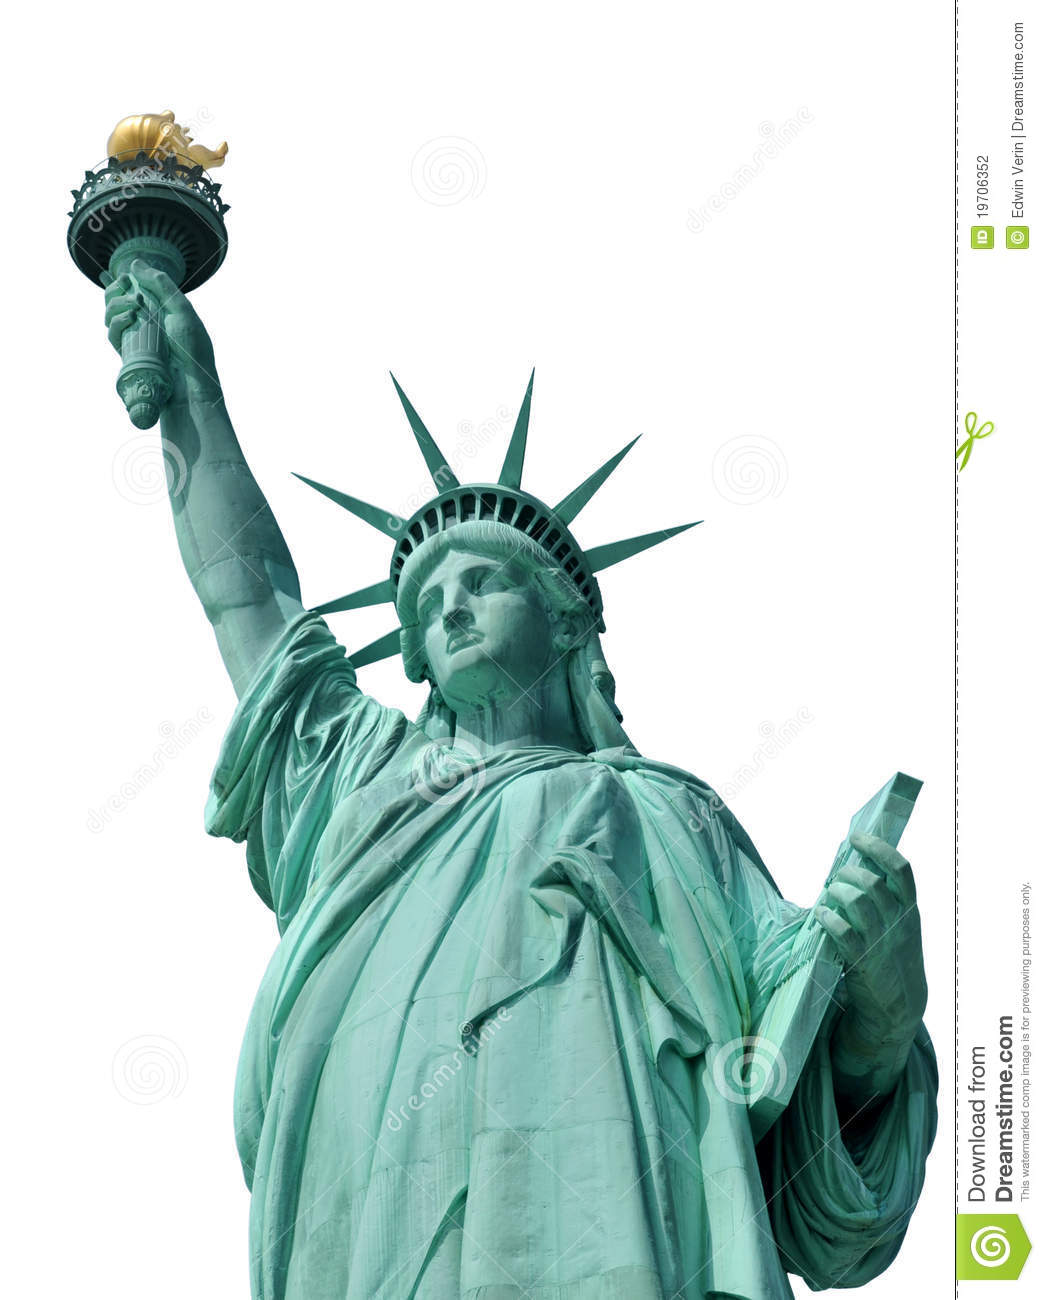 Statue Of Liberty Stock Photography - Image: 19706352